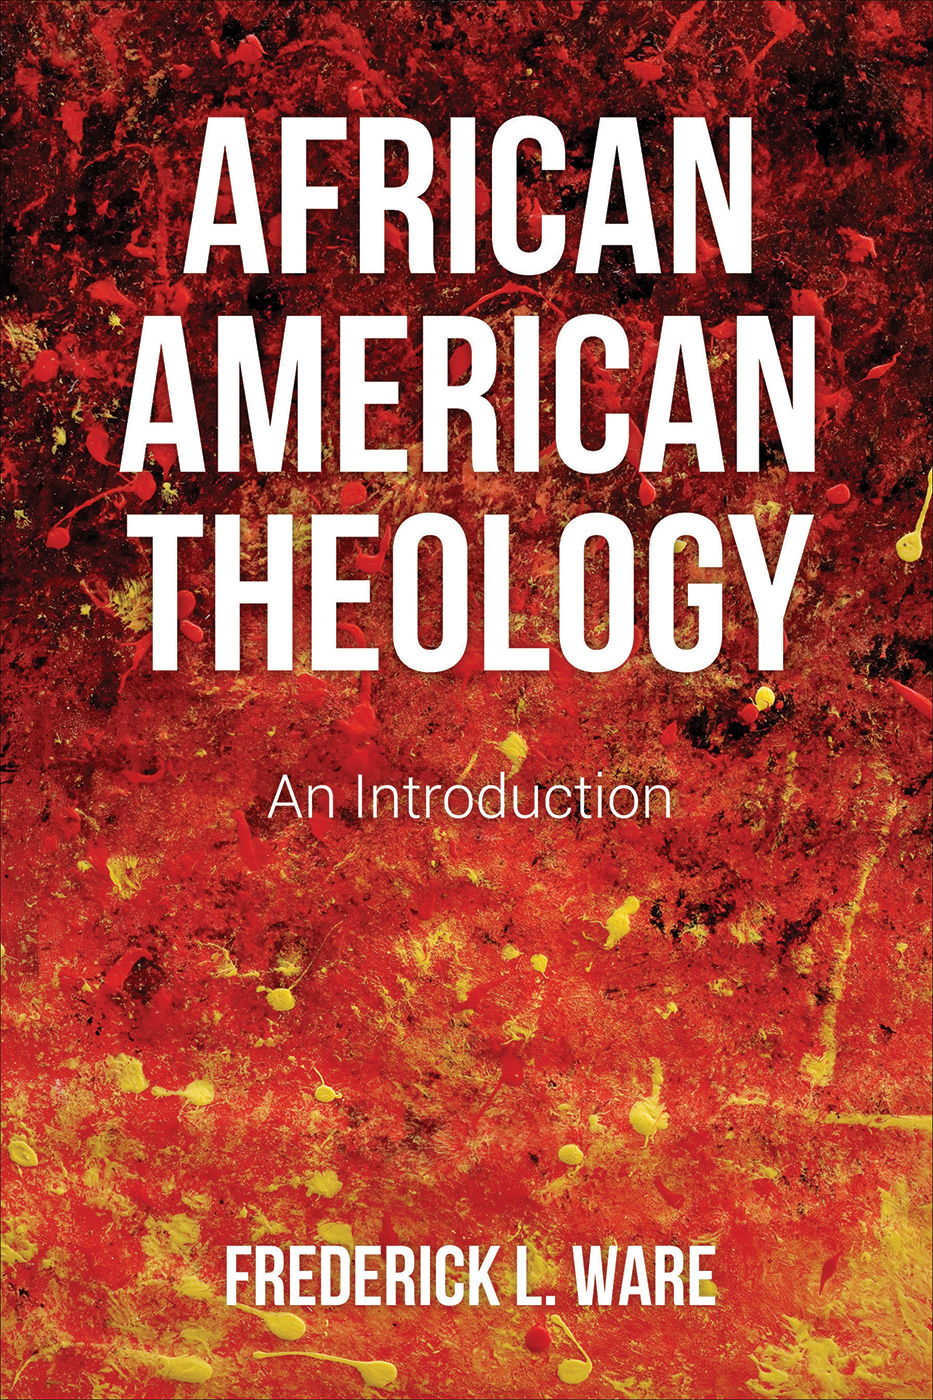 African American Theology